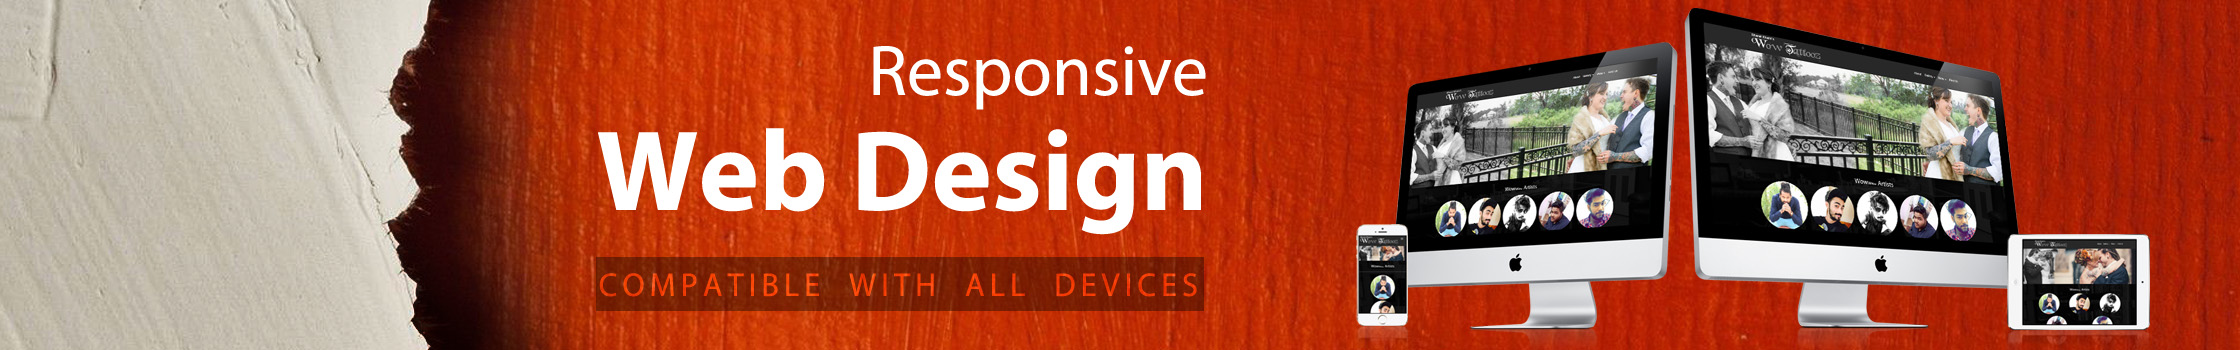 Responsive Website Design in Mumbai, India